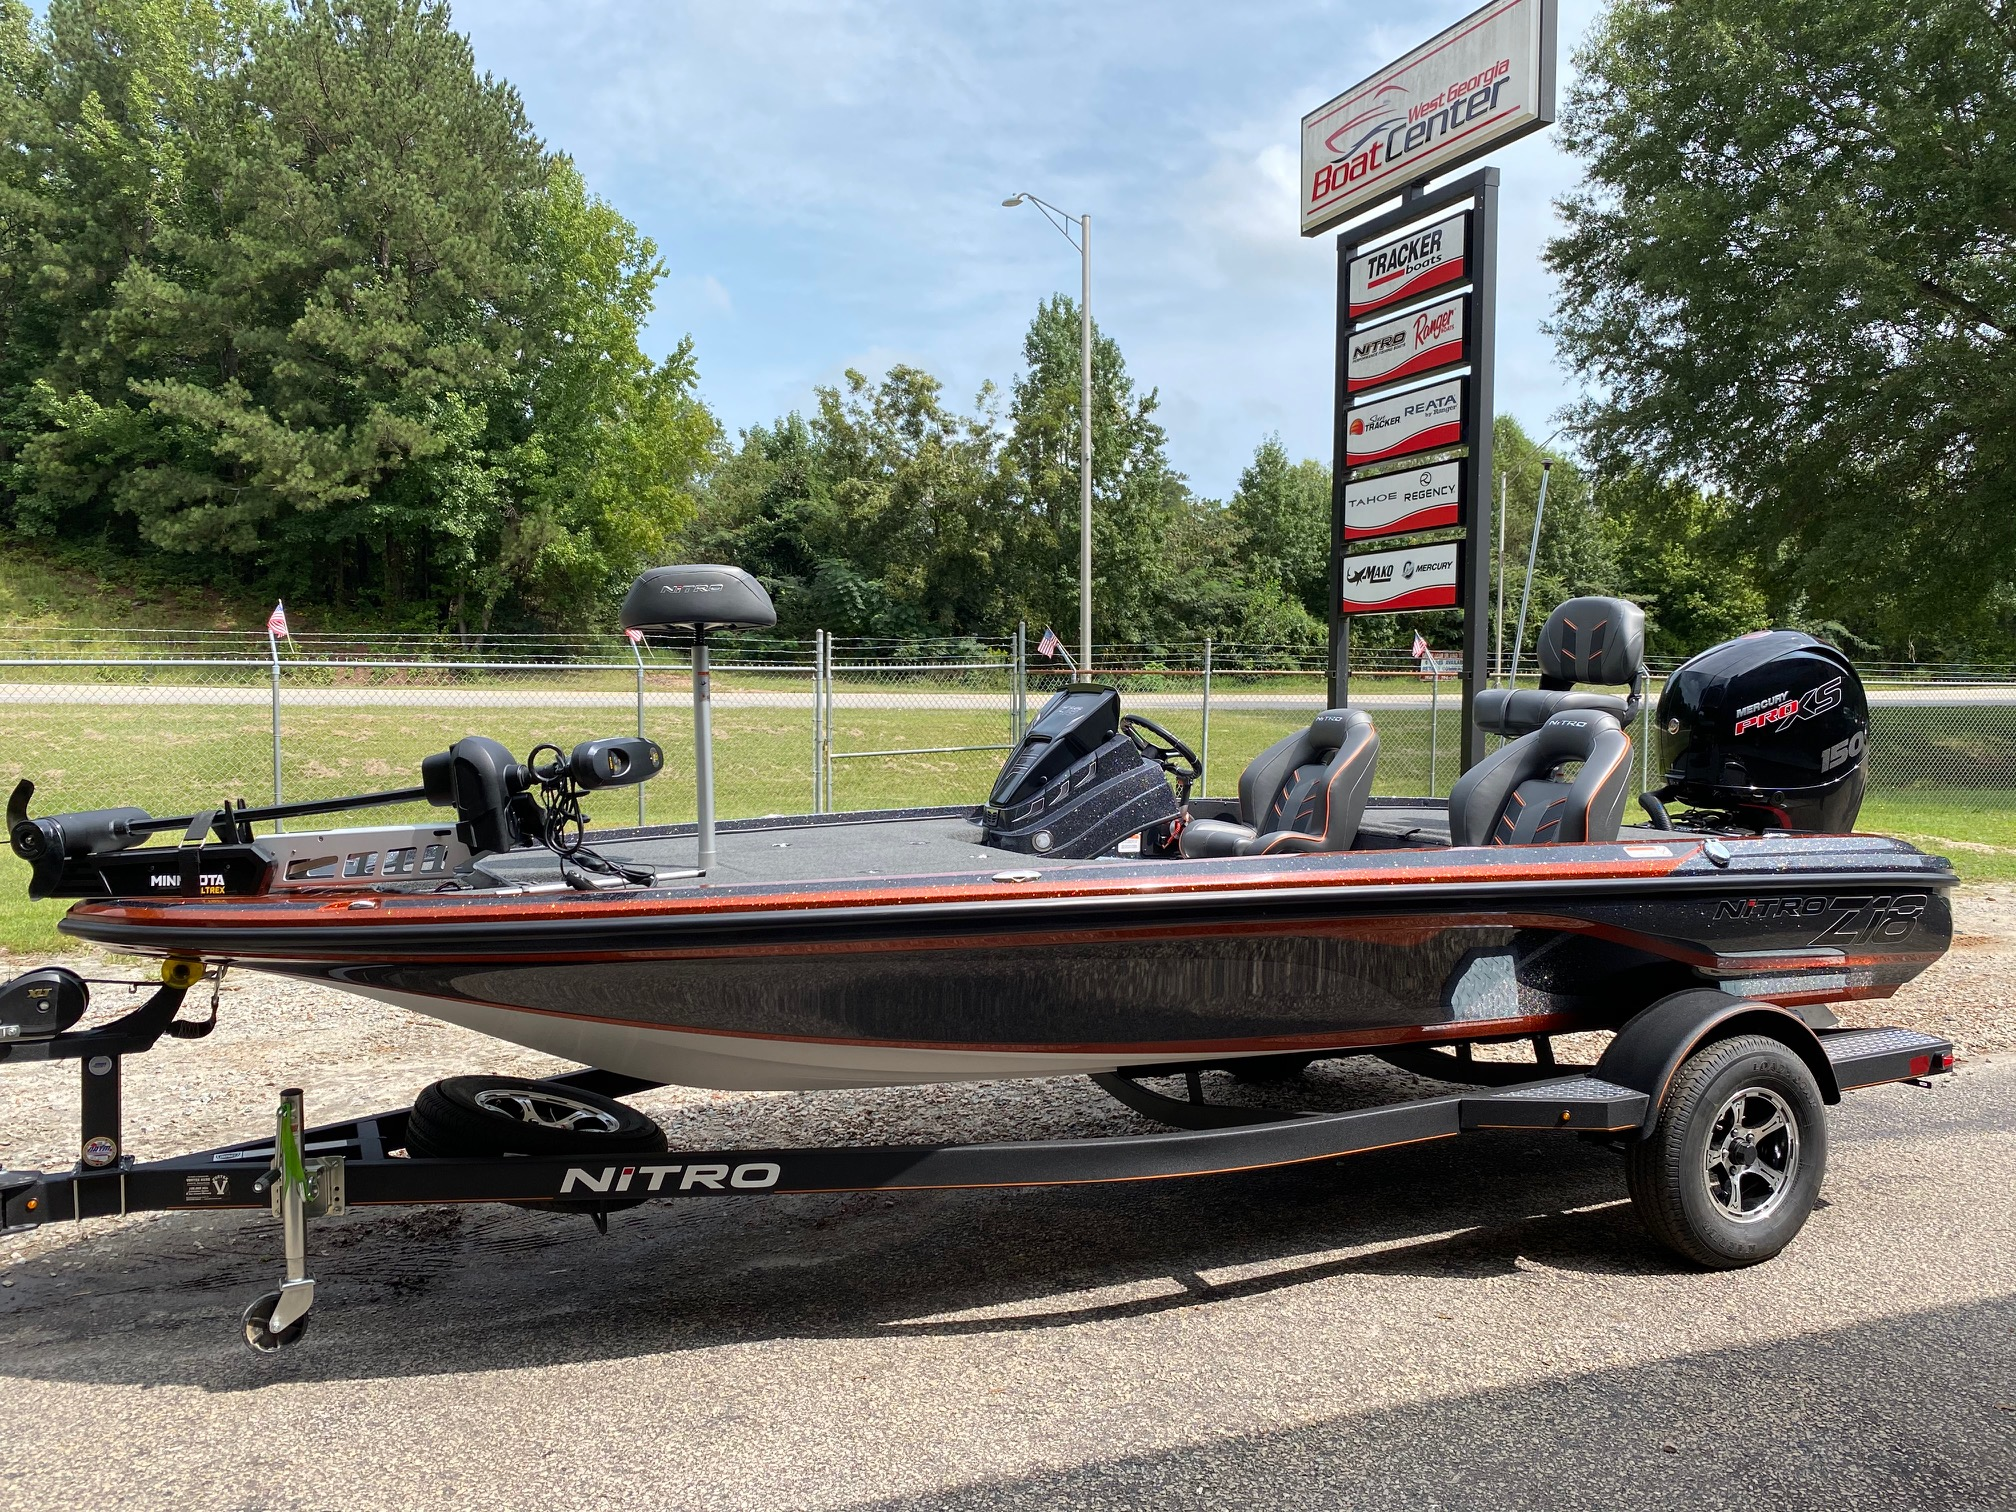 2021 Nitro boat for sale, model of the boat is Z18 W/150L PXS4 & Image # 1 of 47